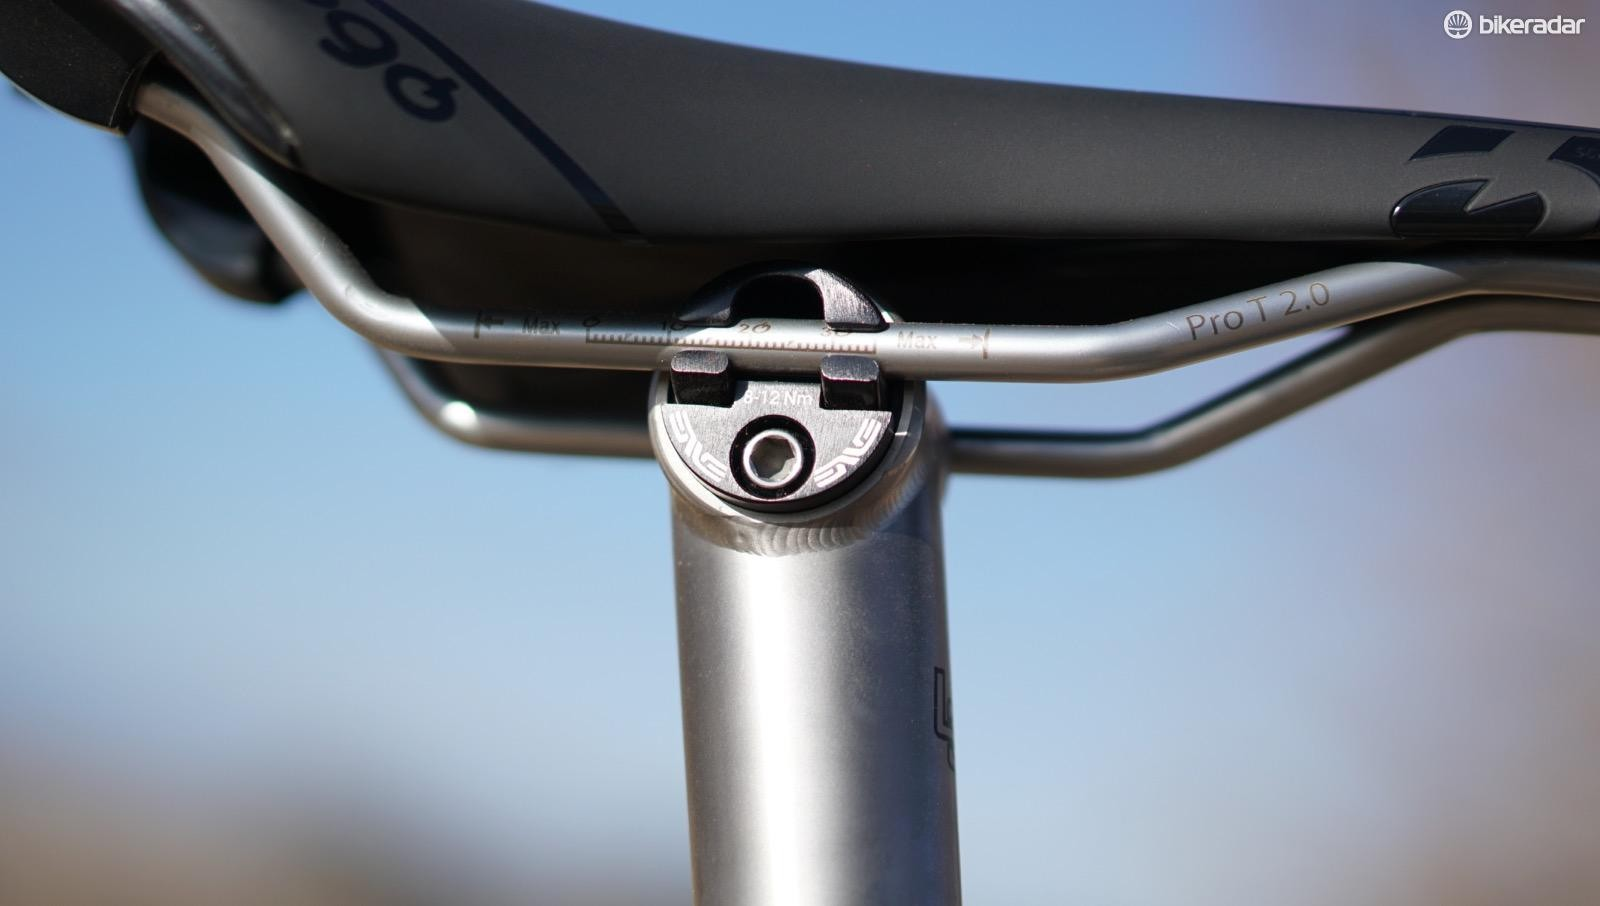 I winced when I saw the 31.6 straight seatpost, thinking it would be harsh. Then I rode it, and was immediately reminded of titanium's forgiving nature